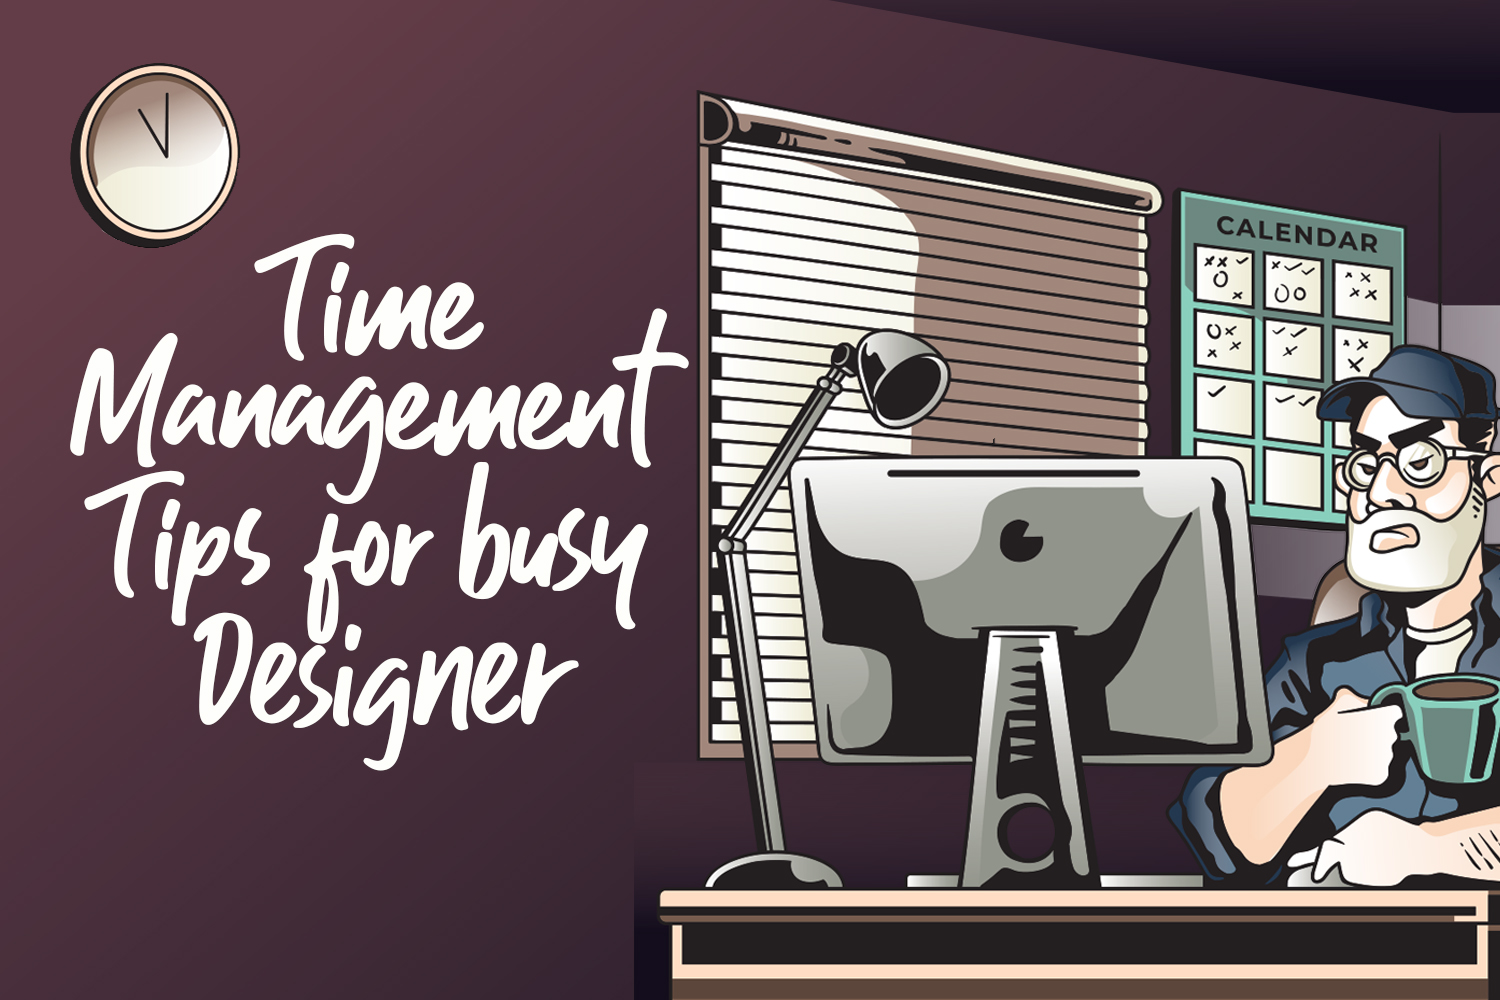 Time Management Tips for Busy Designers